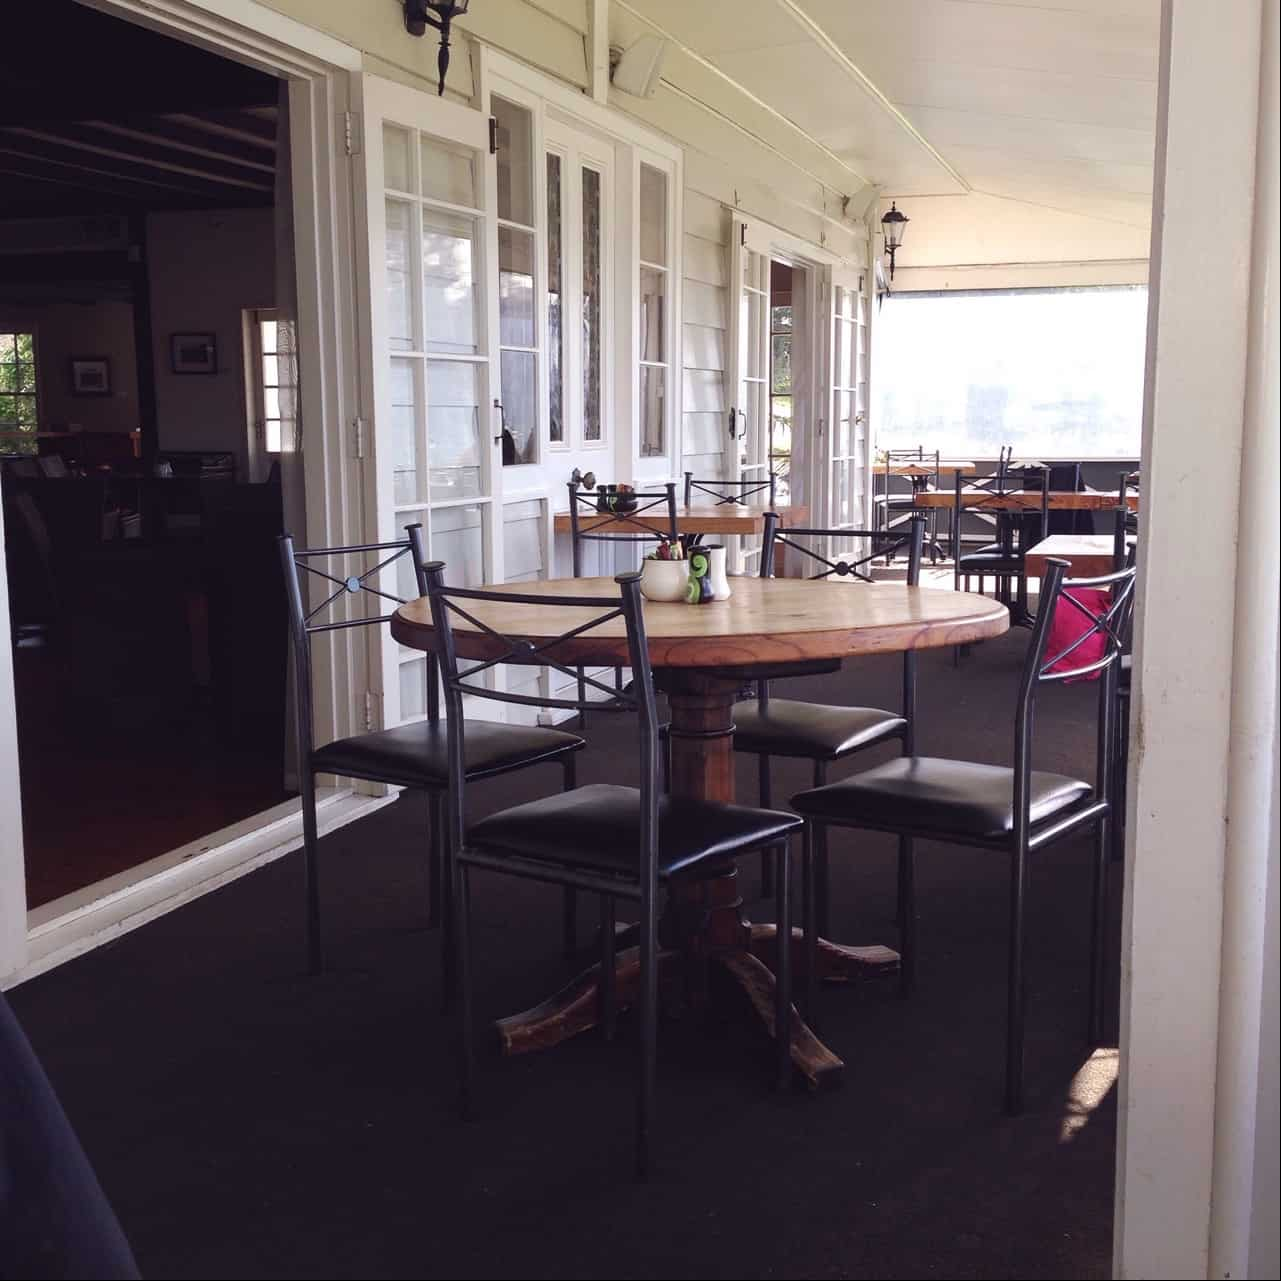 The verandah of The Pear Tree is enclosed in winter, so you can enjoy the view even if the weather isn't great.